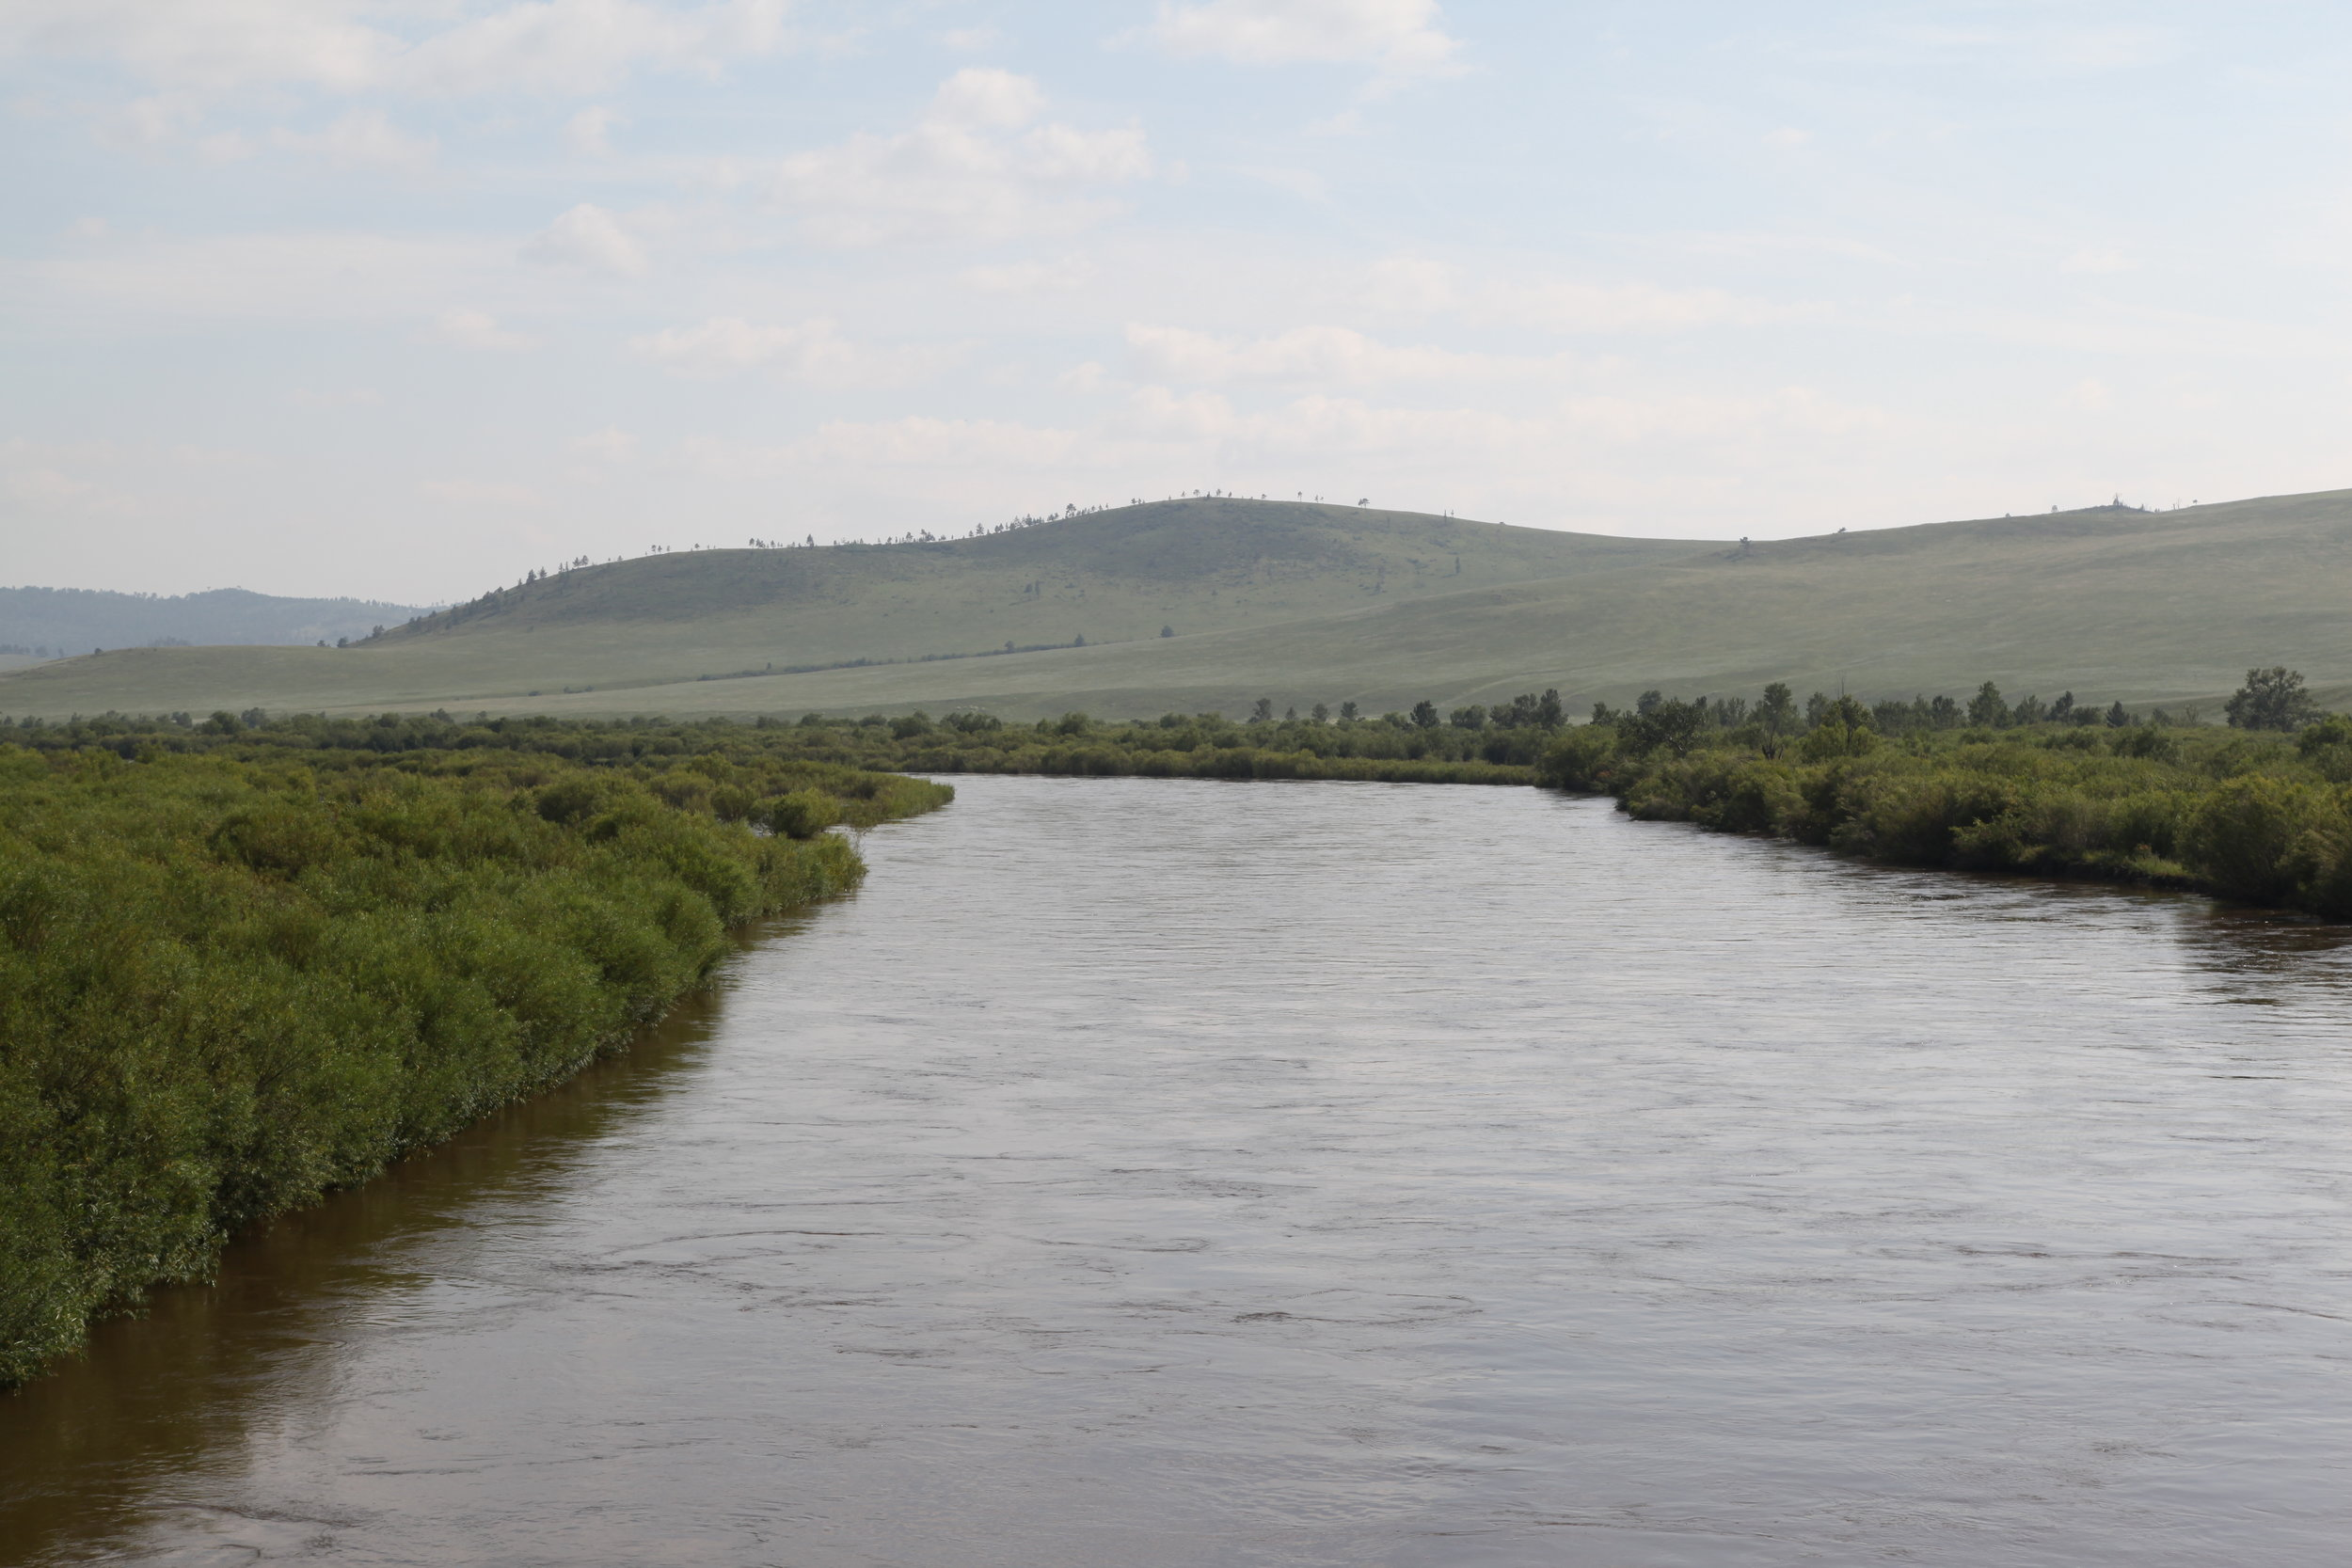 Onon River - The Onon River rises on the northern slope of the Khan Khentii Mountain Range and flows 808 km to join the Shilka River in the Russian Federation. For its first 445 km the Onon flows through Mongolia. The Khyarkhan, Agats, Kheriin are small and medium sized rivers, that are tributaries and flow into the Onon in the proximity of our lodge. Our five rivers abound with many fish species, including taimen, lenok, Amur pike, grayling, trout and others.